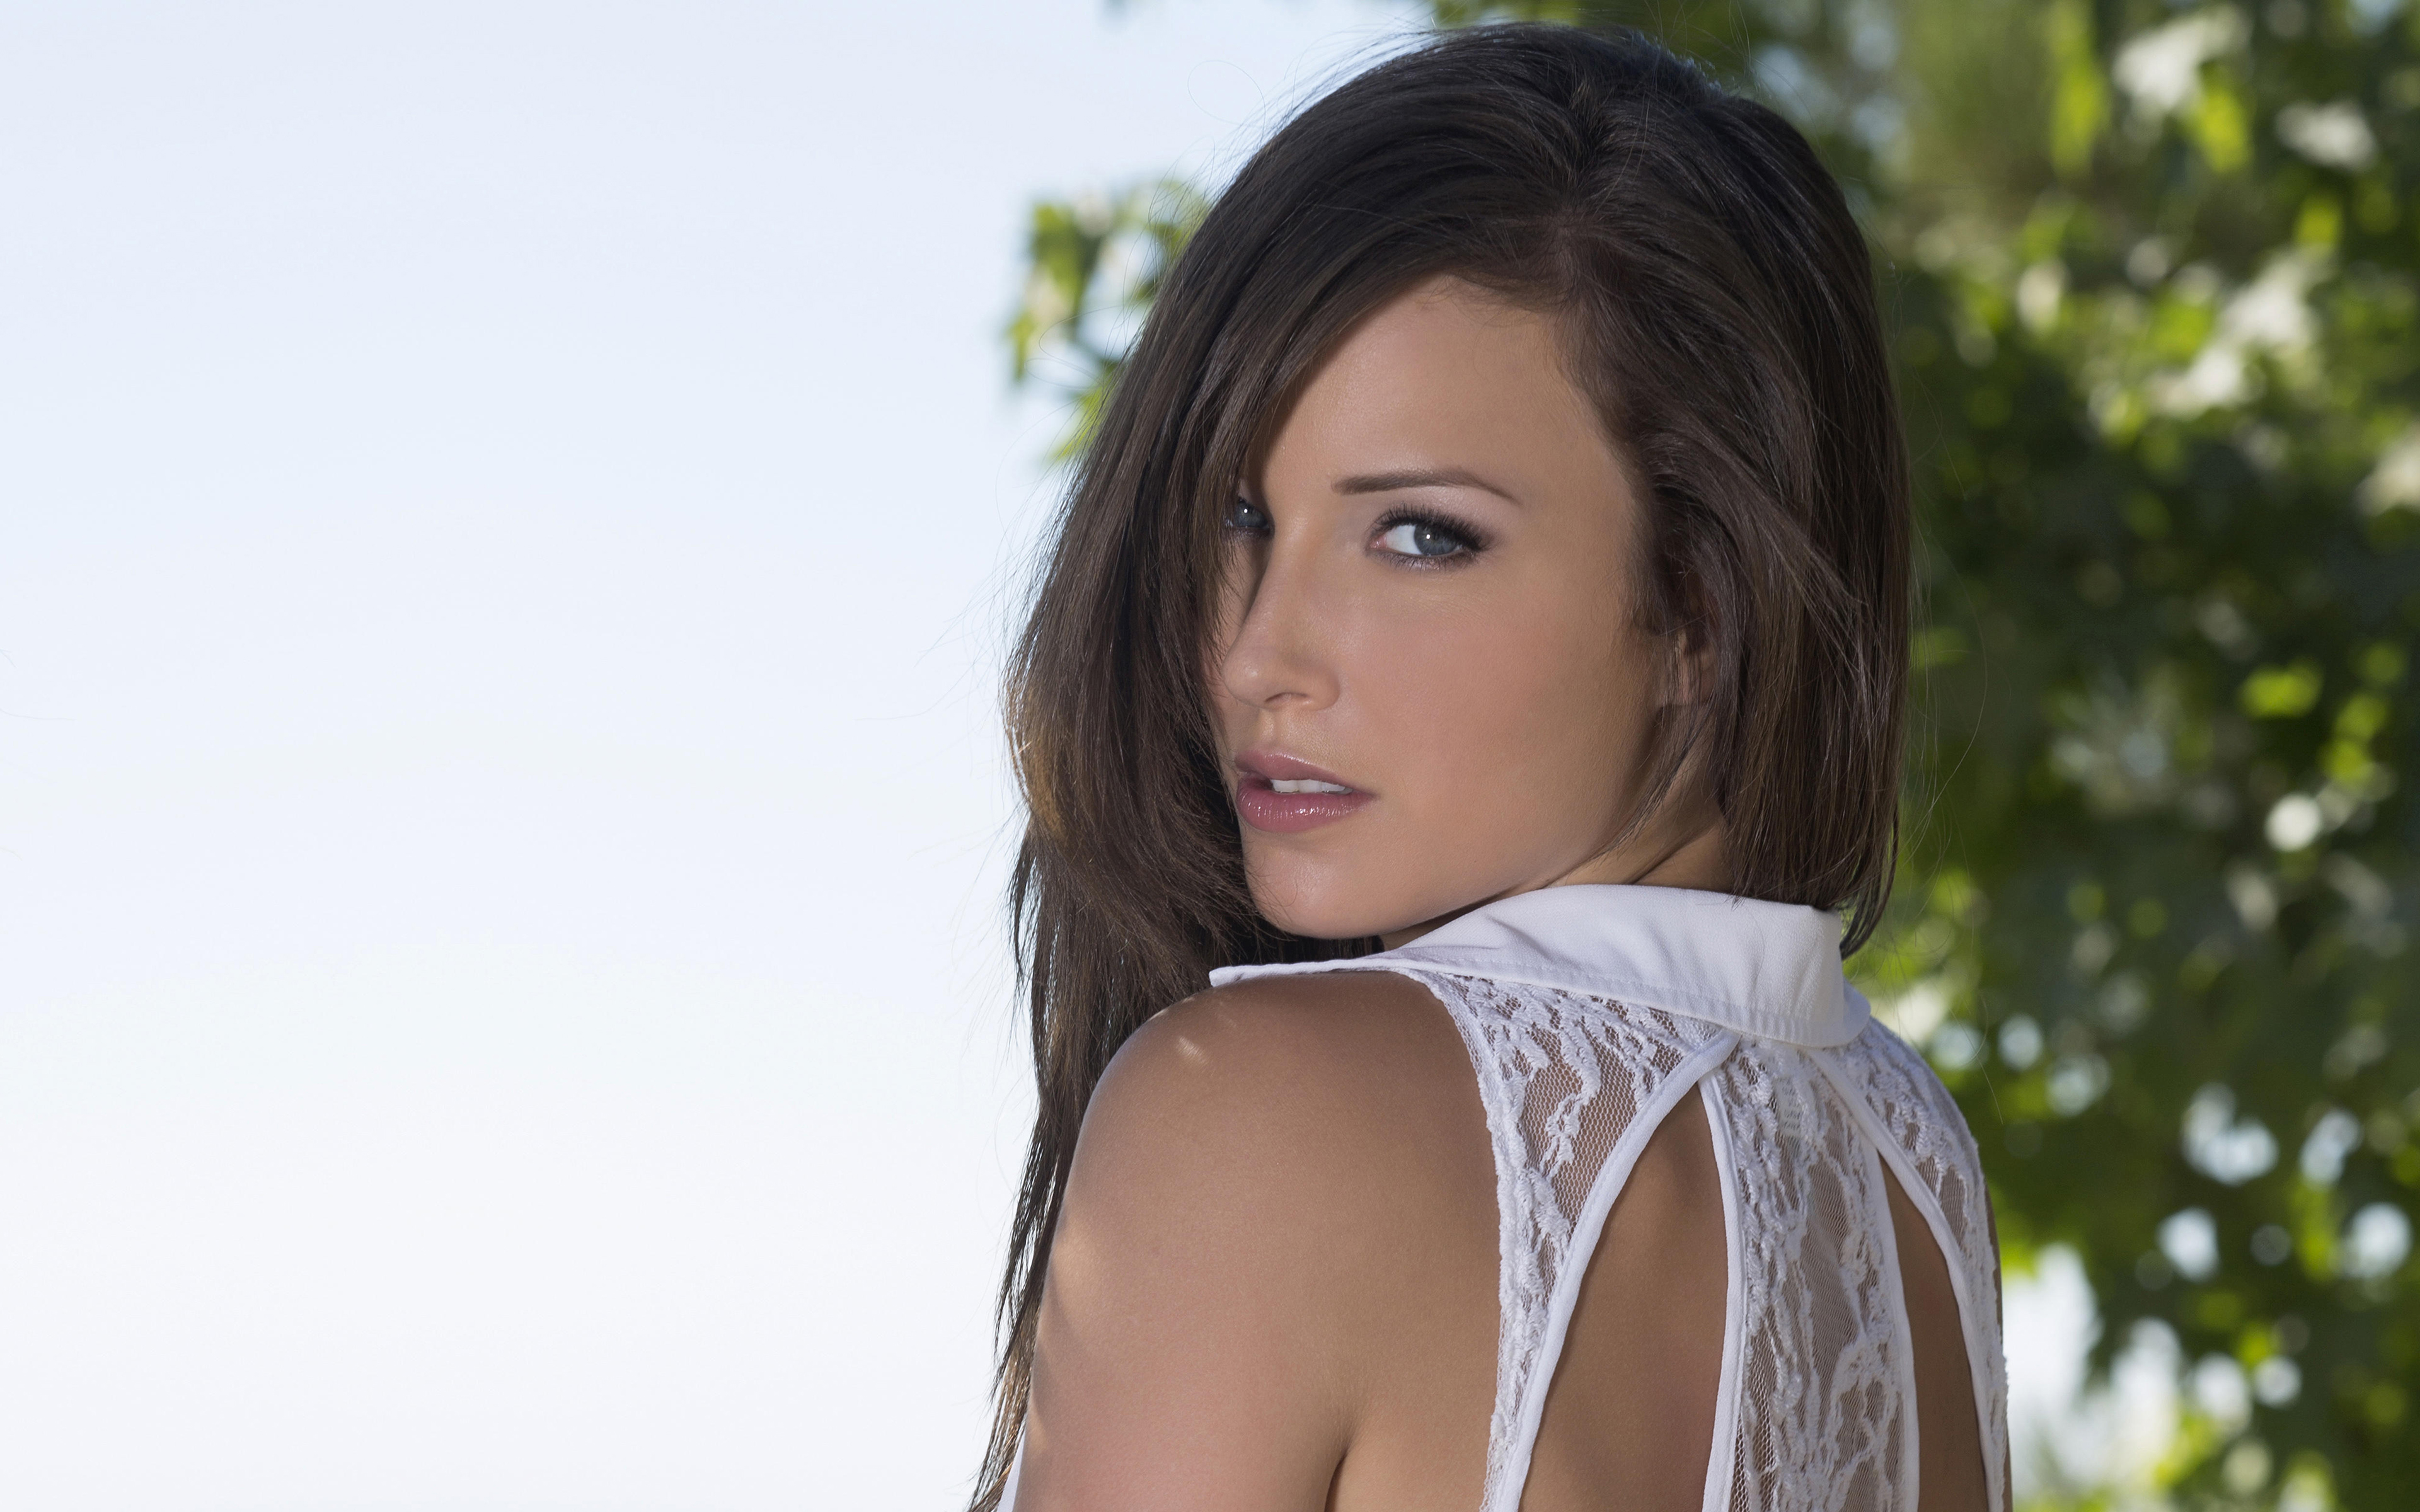 Malena morgan hd wallpaper 60324 1920x1080 px hdwallsource malena morgan widescreen wallpaper 60319 voltagebd Choice Image